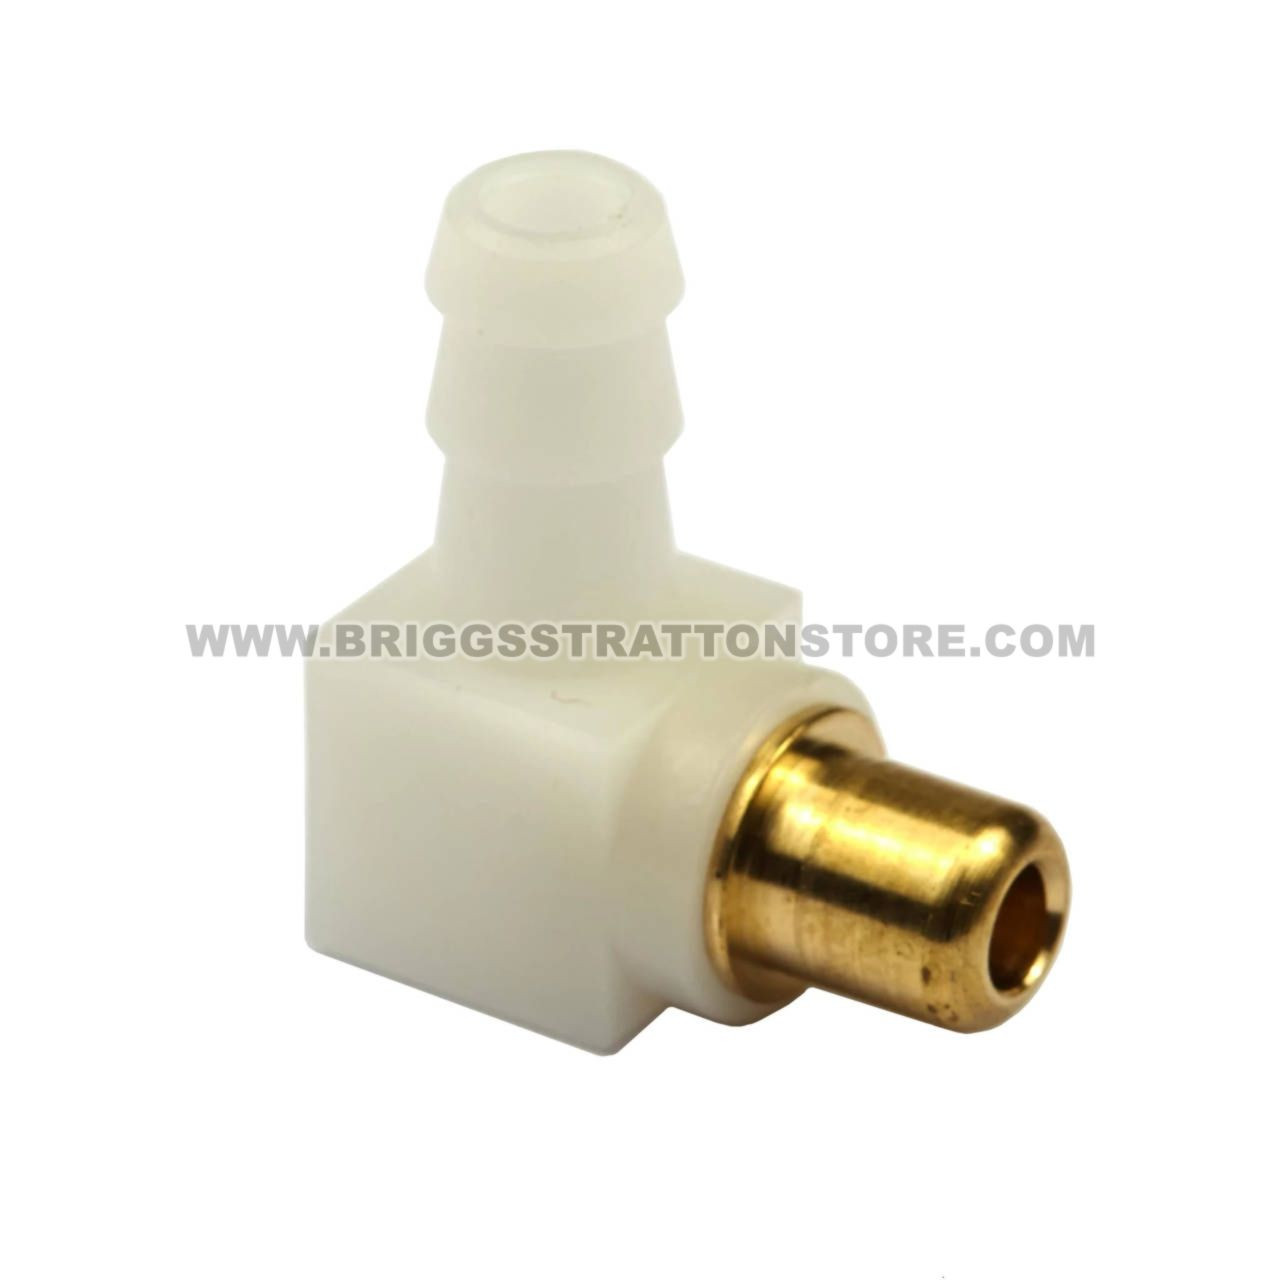 Connector Hose For Briggs /& Stratton 692317 Replaces 493496 494451